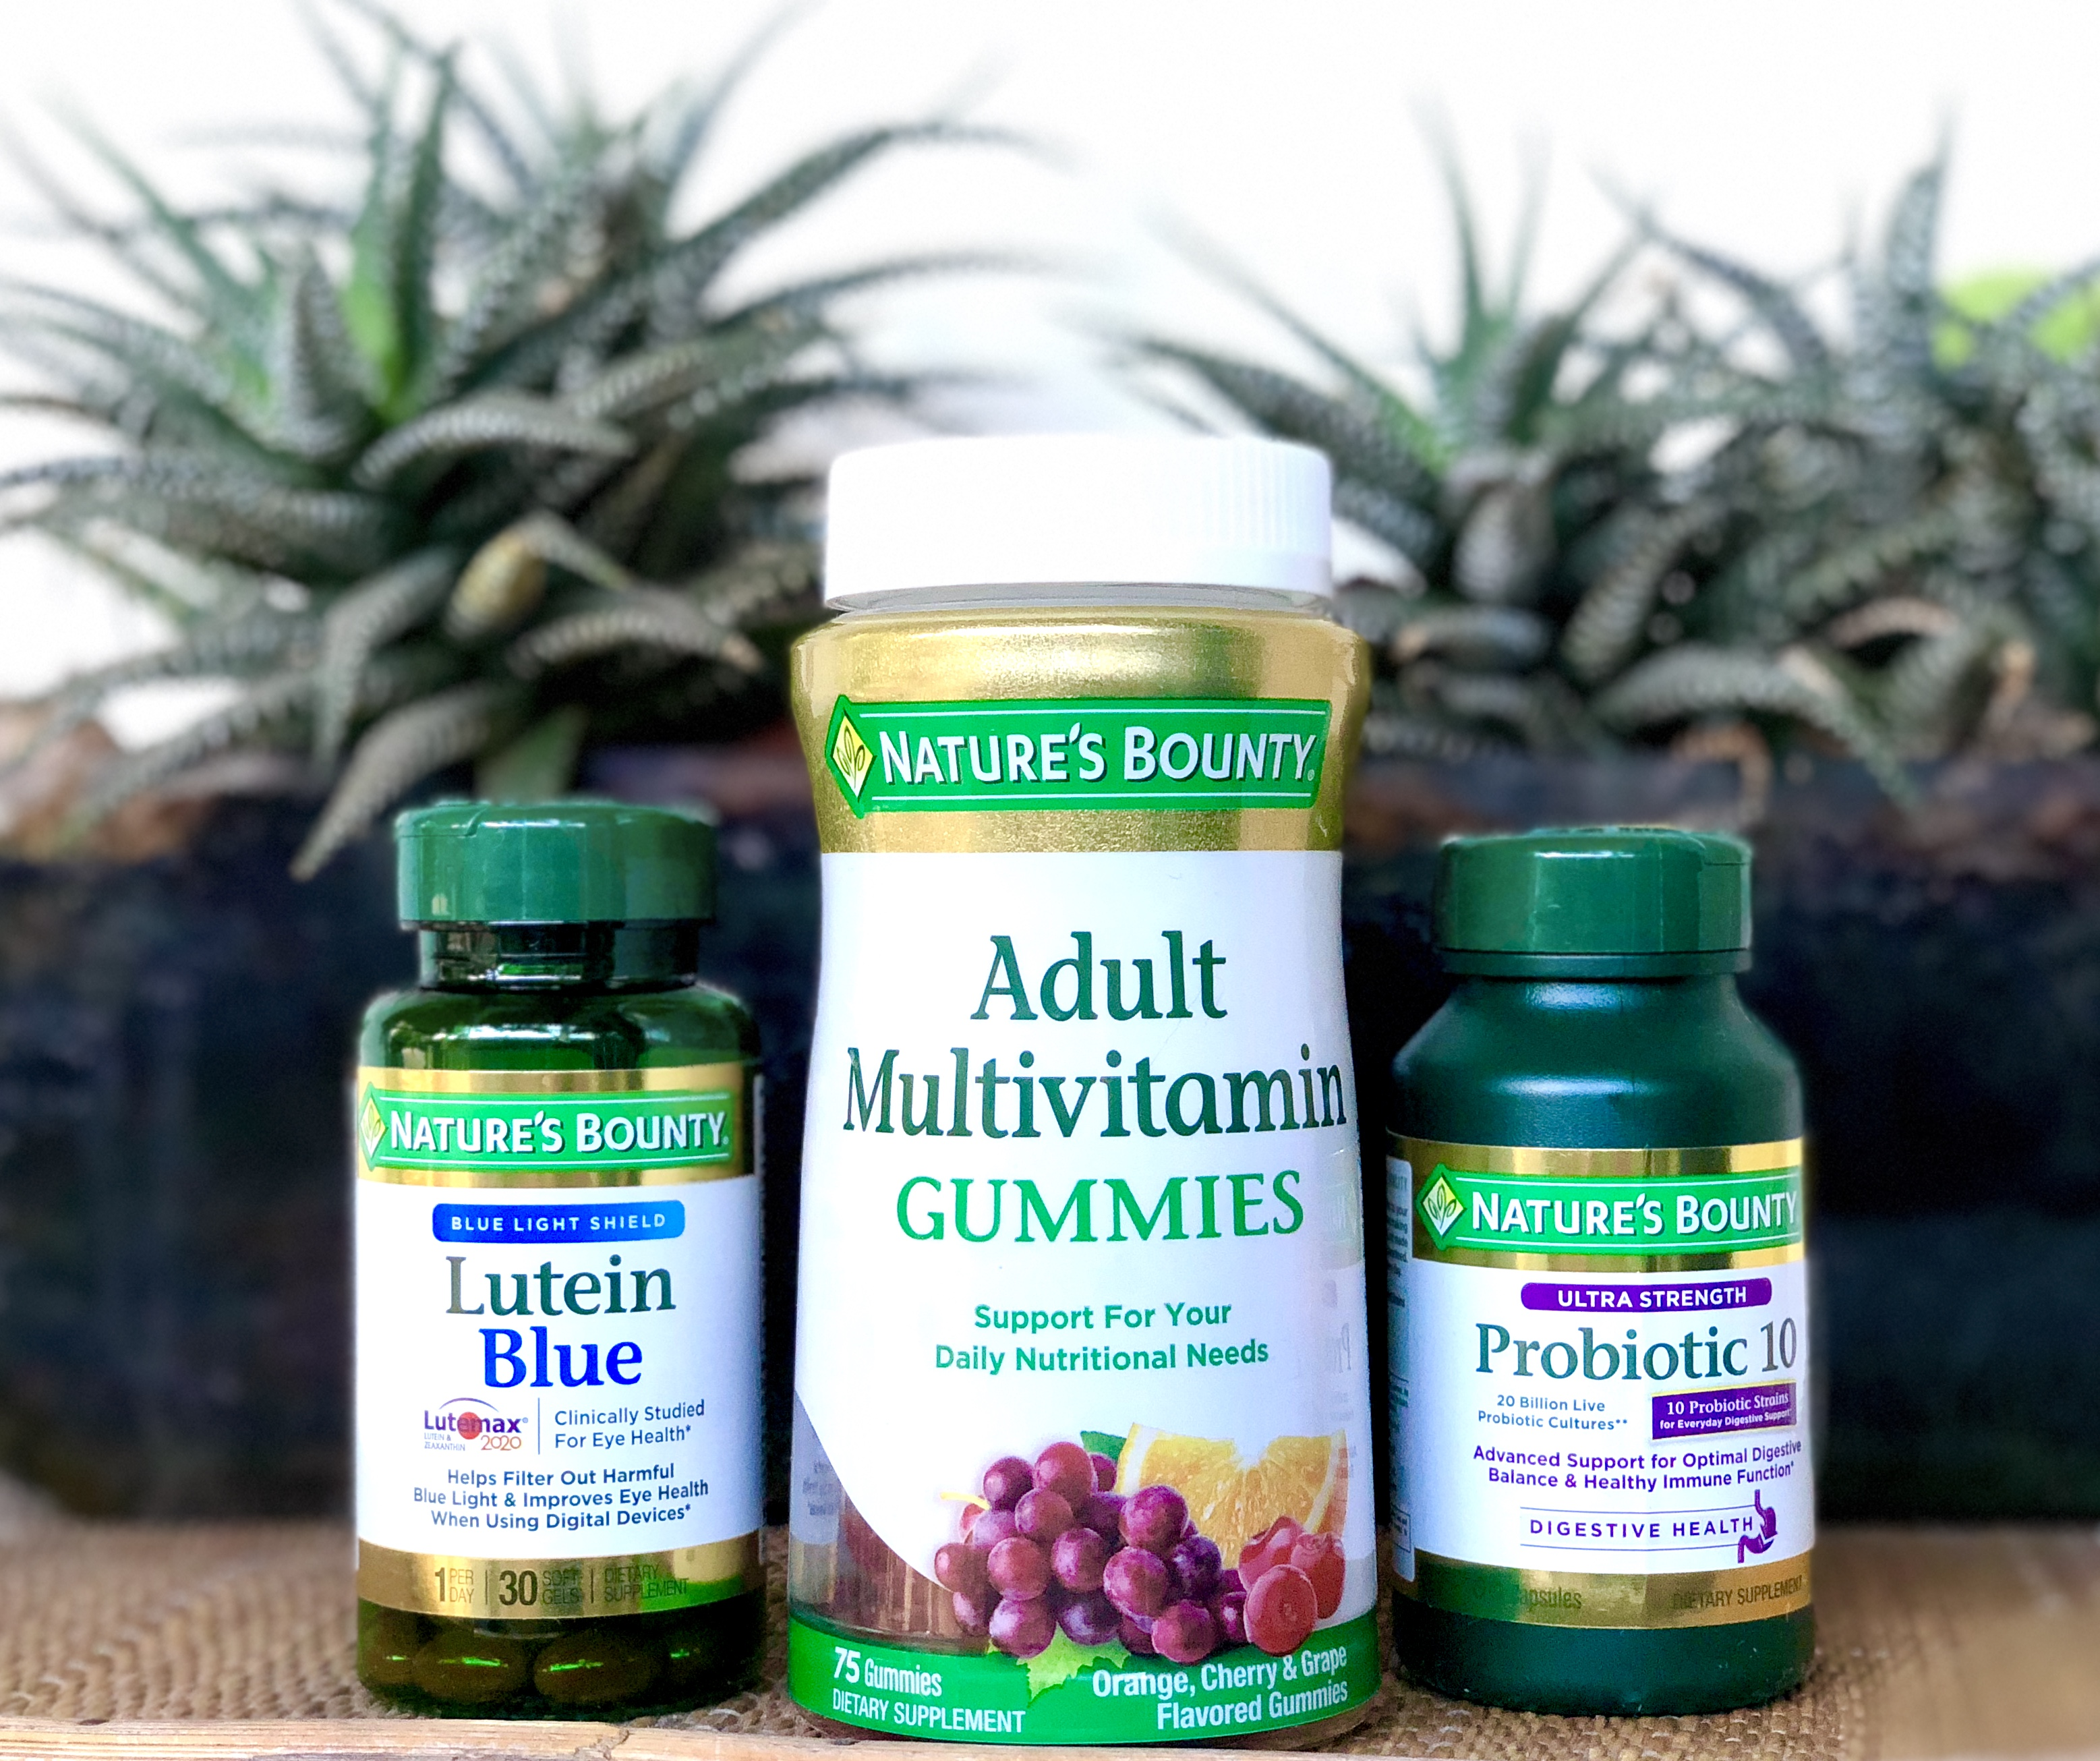 I am excited to partner with Nature's Bounty on this informative women's health post to share some of my favorite wellness tips to help women over 40 feel healthy and vibrant.